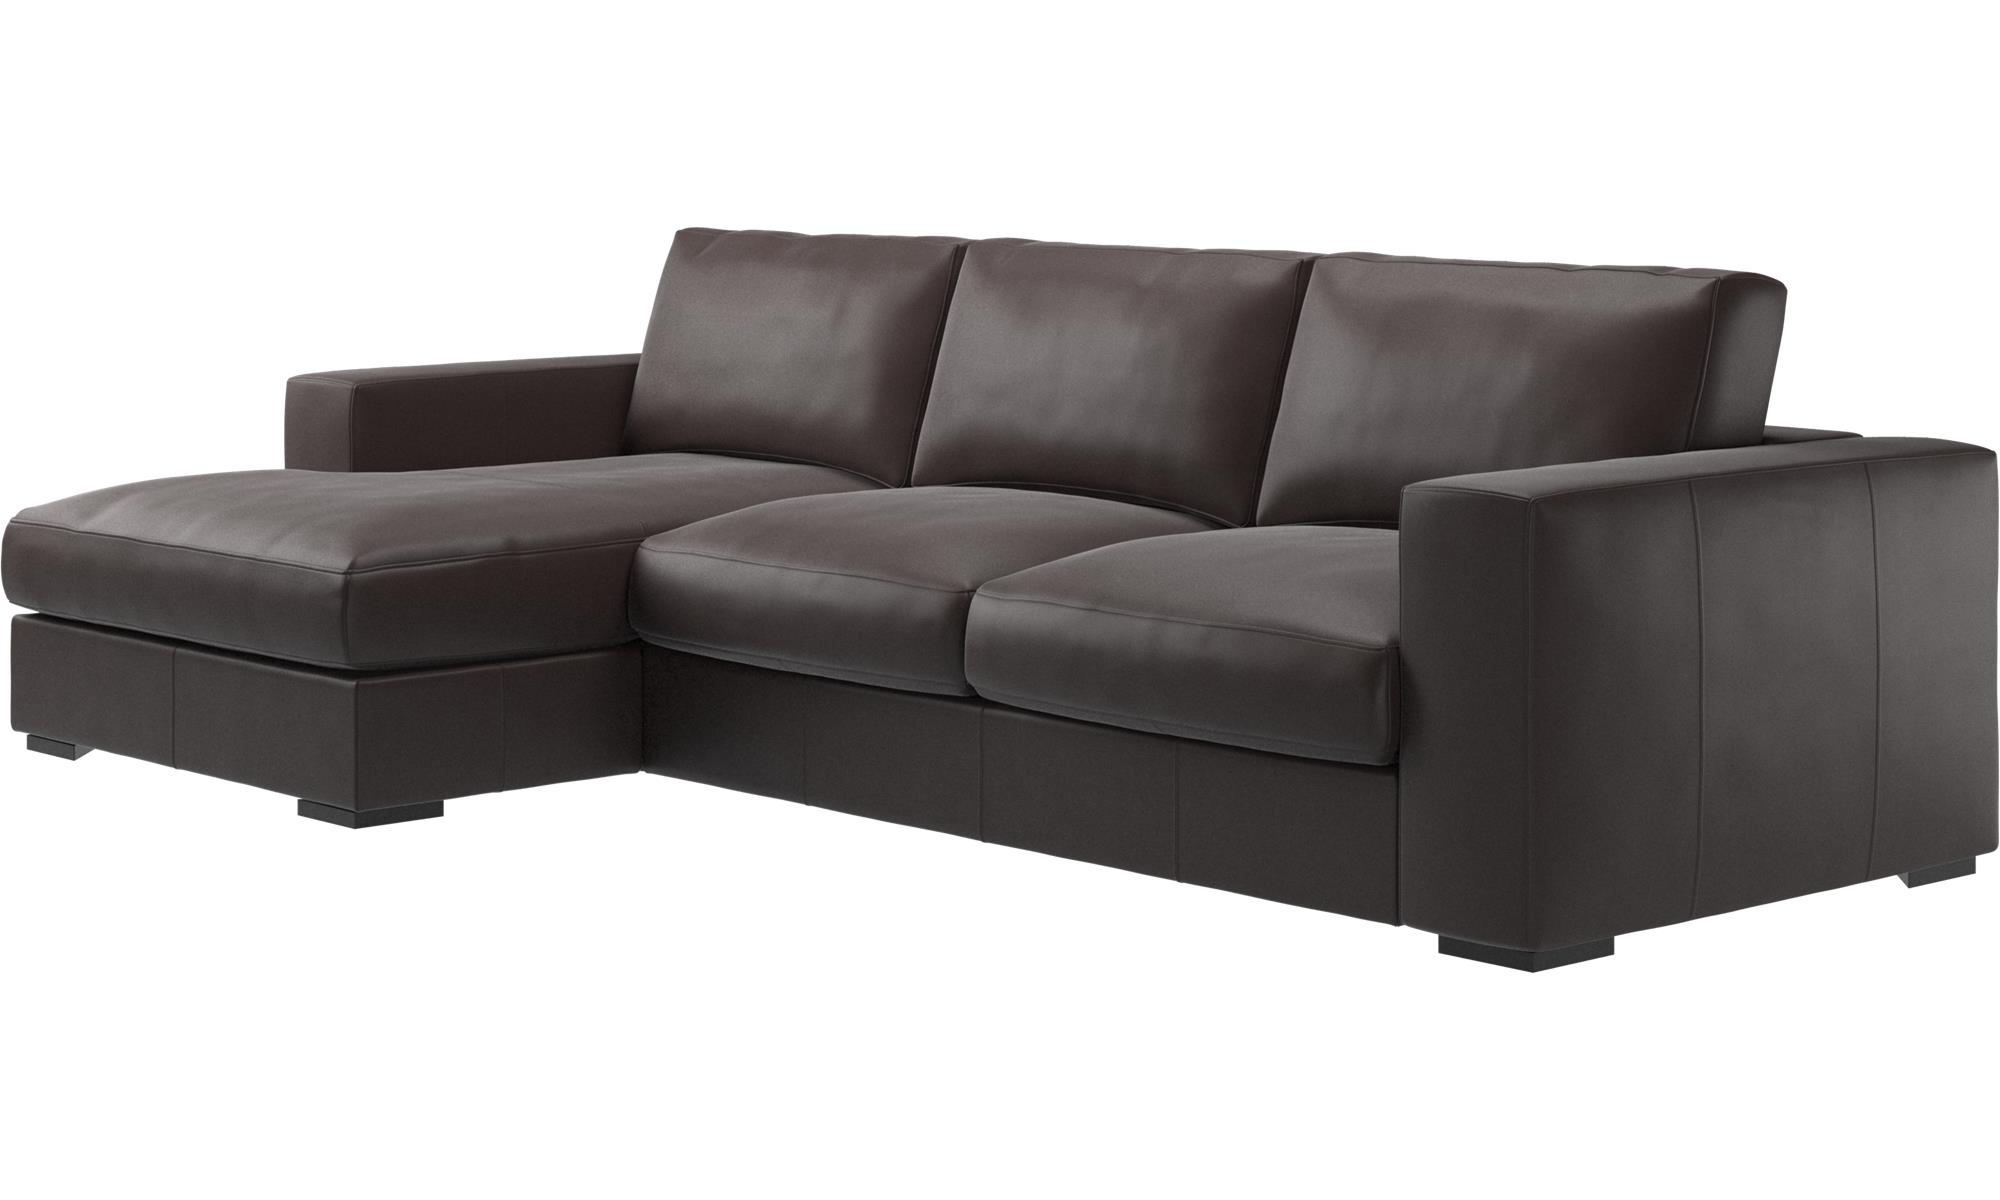 chaise longue sofas cenova sofa with resting unit boconcept. Black Bedroom Furniture Sets. Home Design Ideas